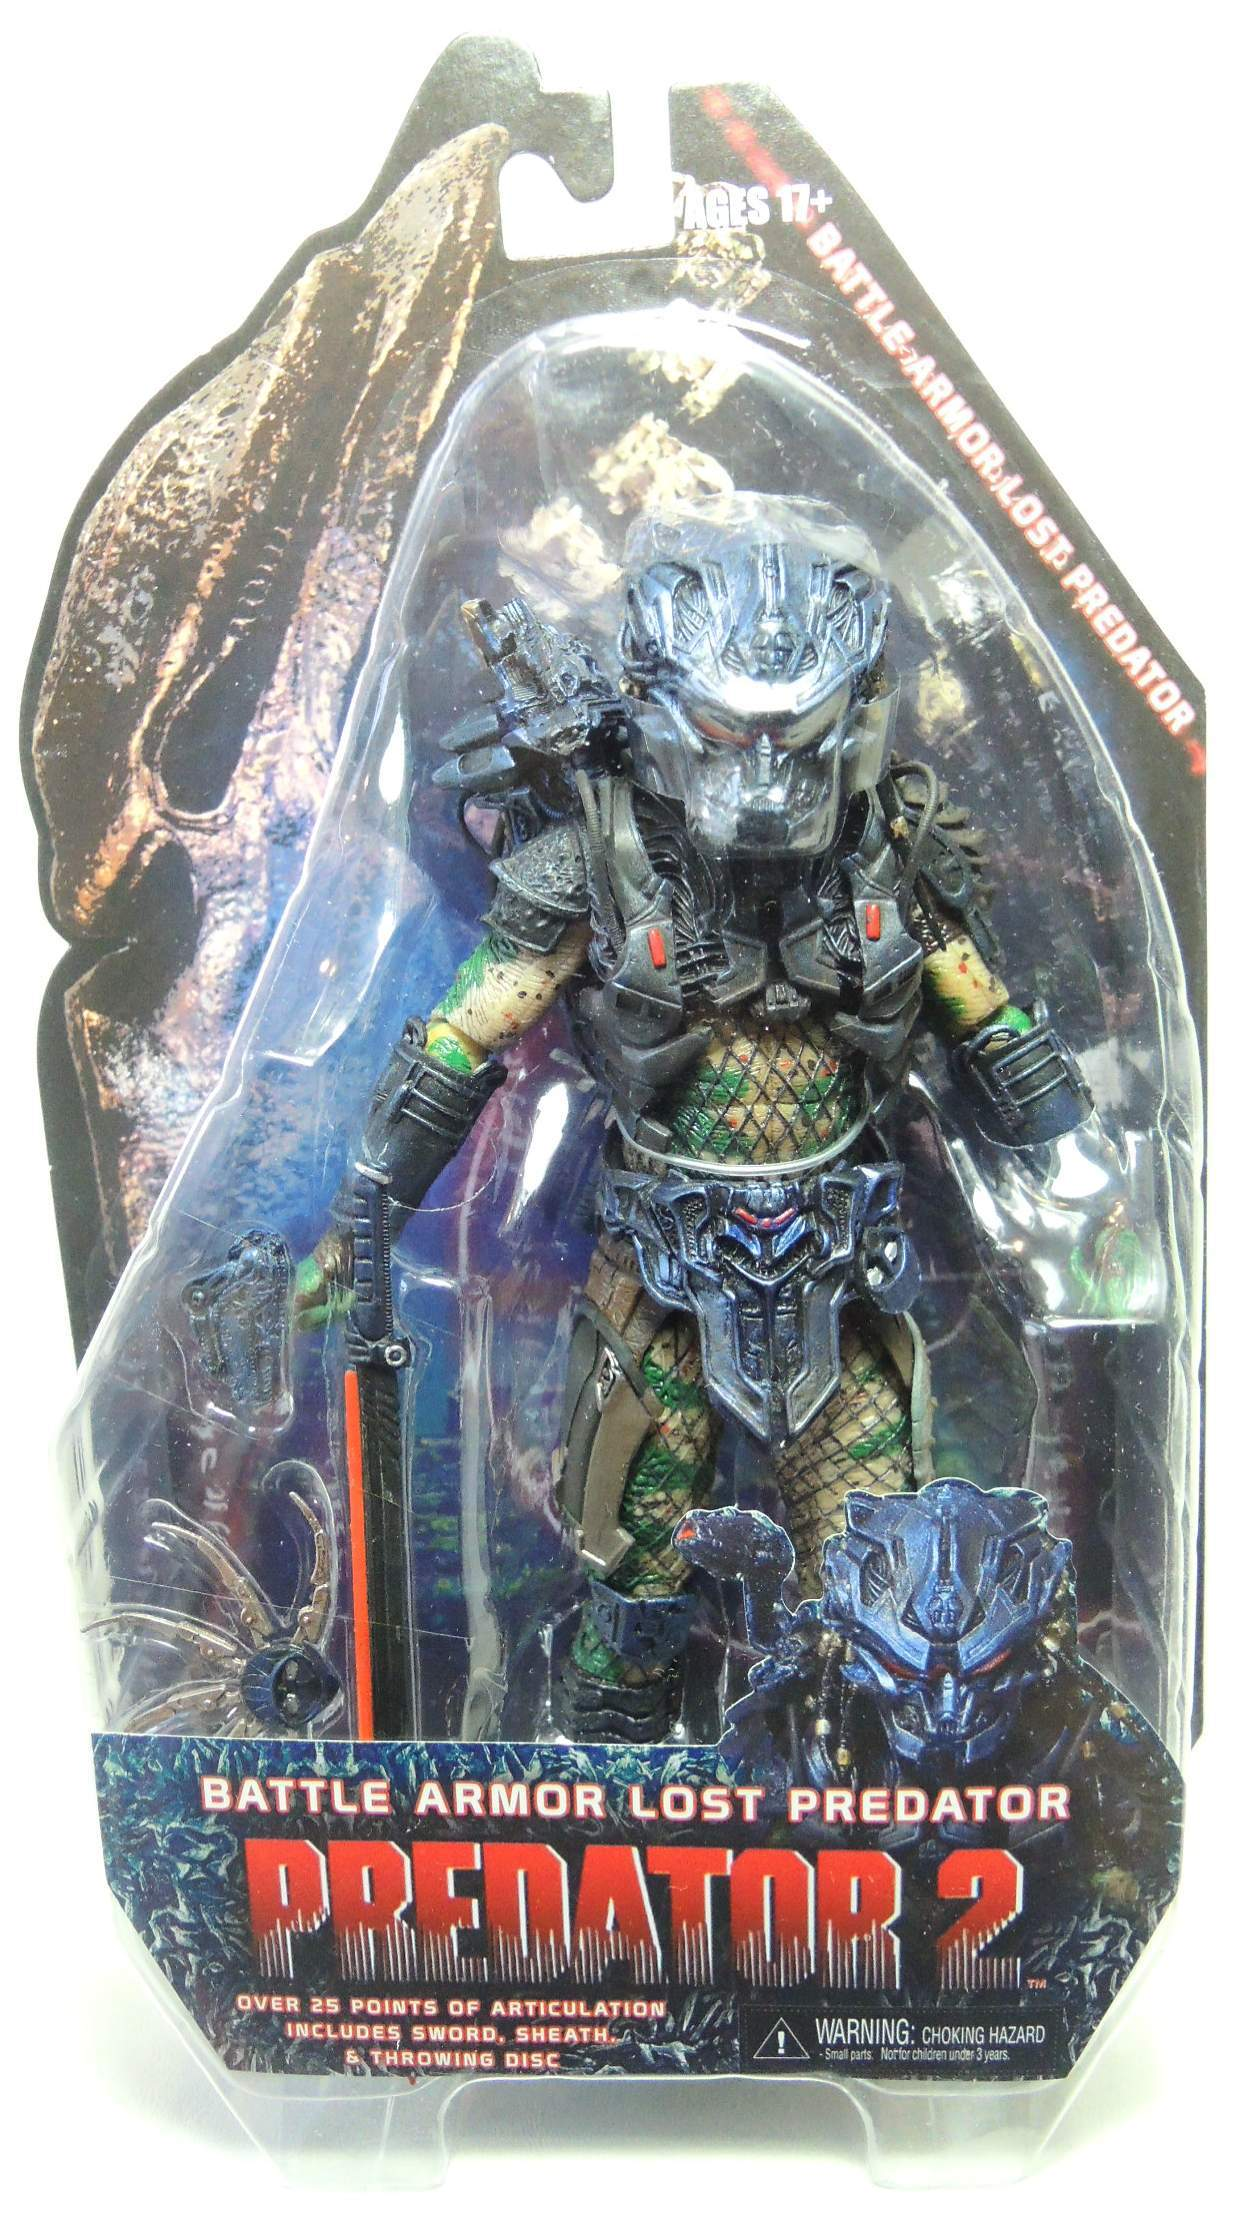 NECA Predator Series 11 - Battle Armor Lost Predator 8 inch NECA, Predators, Scifi, 2014, scifi, movie